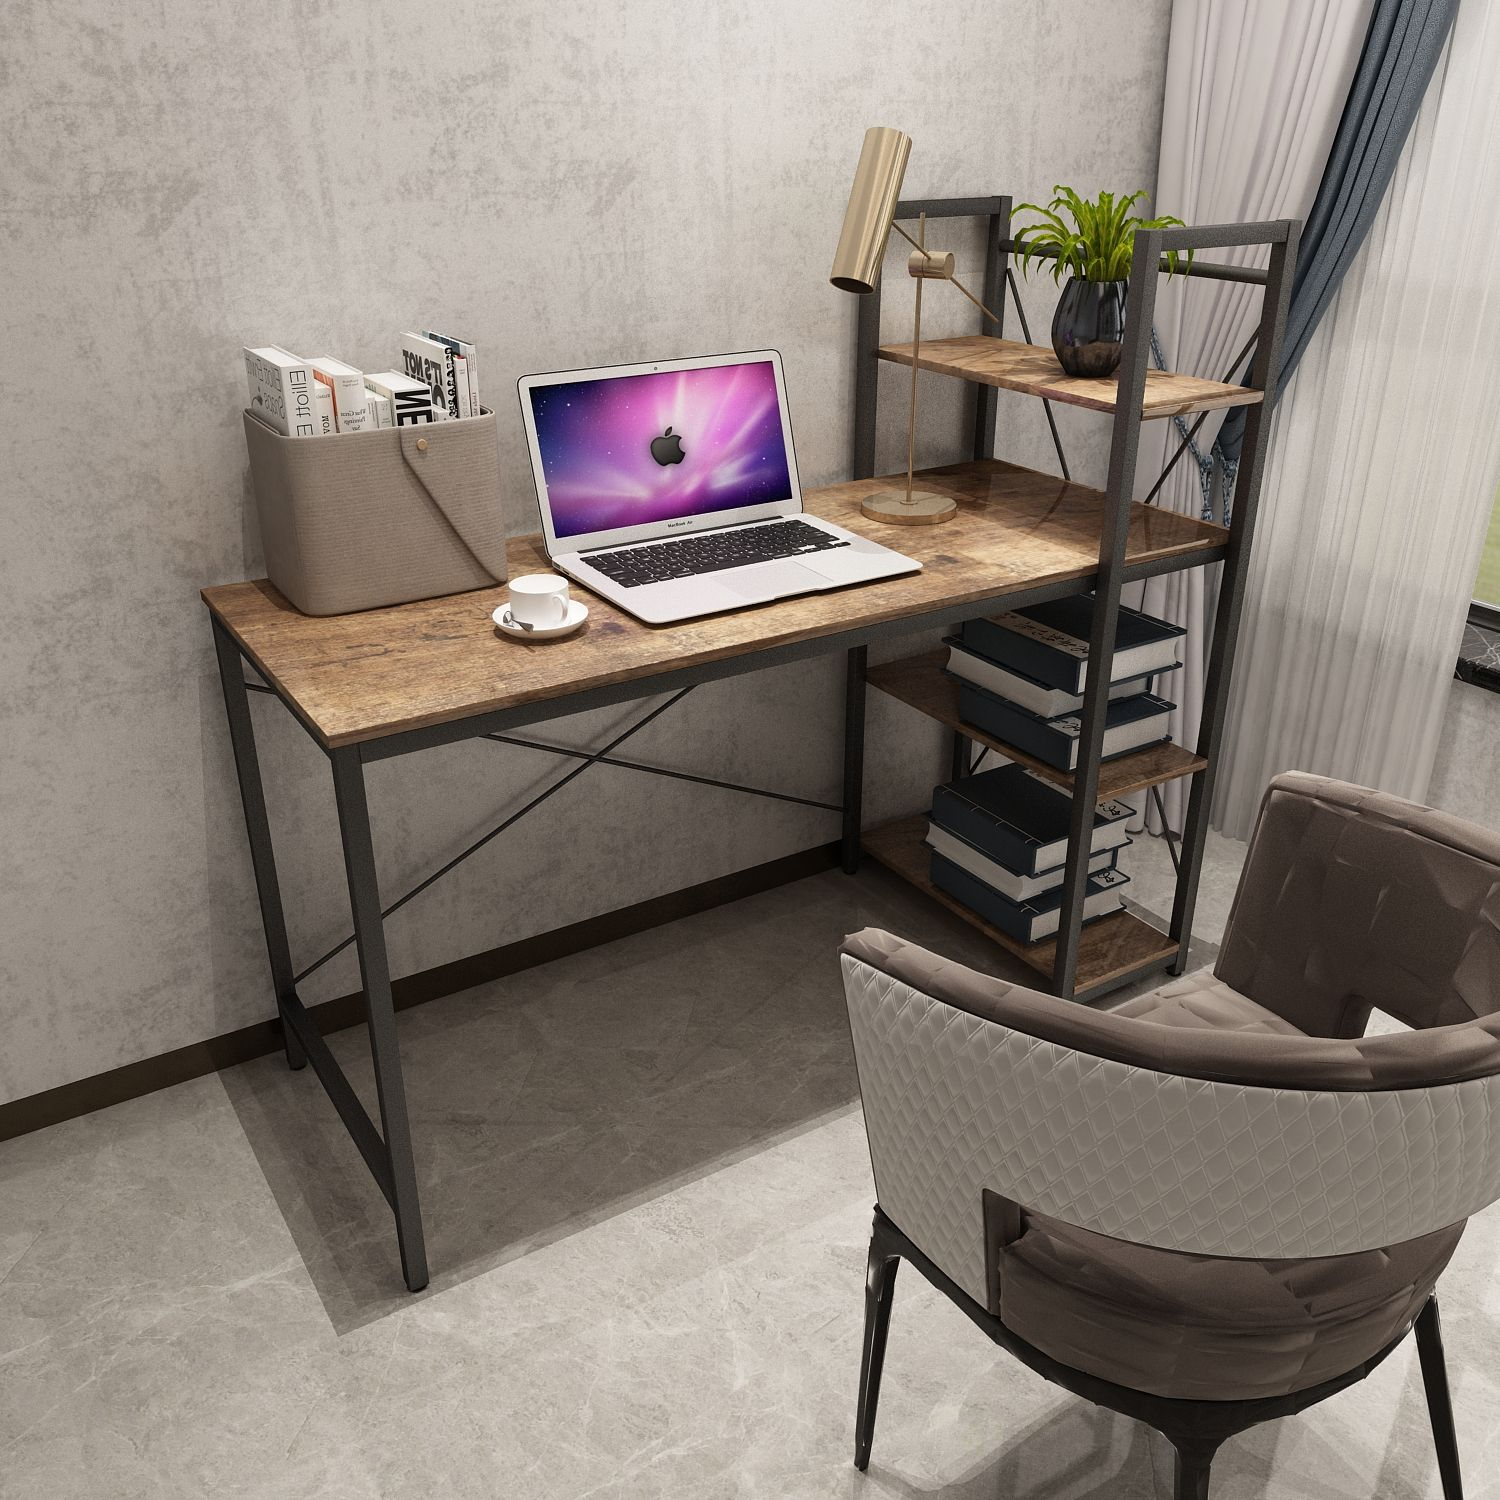 Industrial style OEM/ODM computer desk for home office desks with book shelf